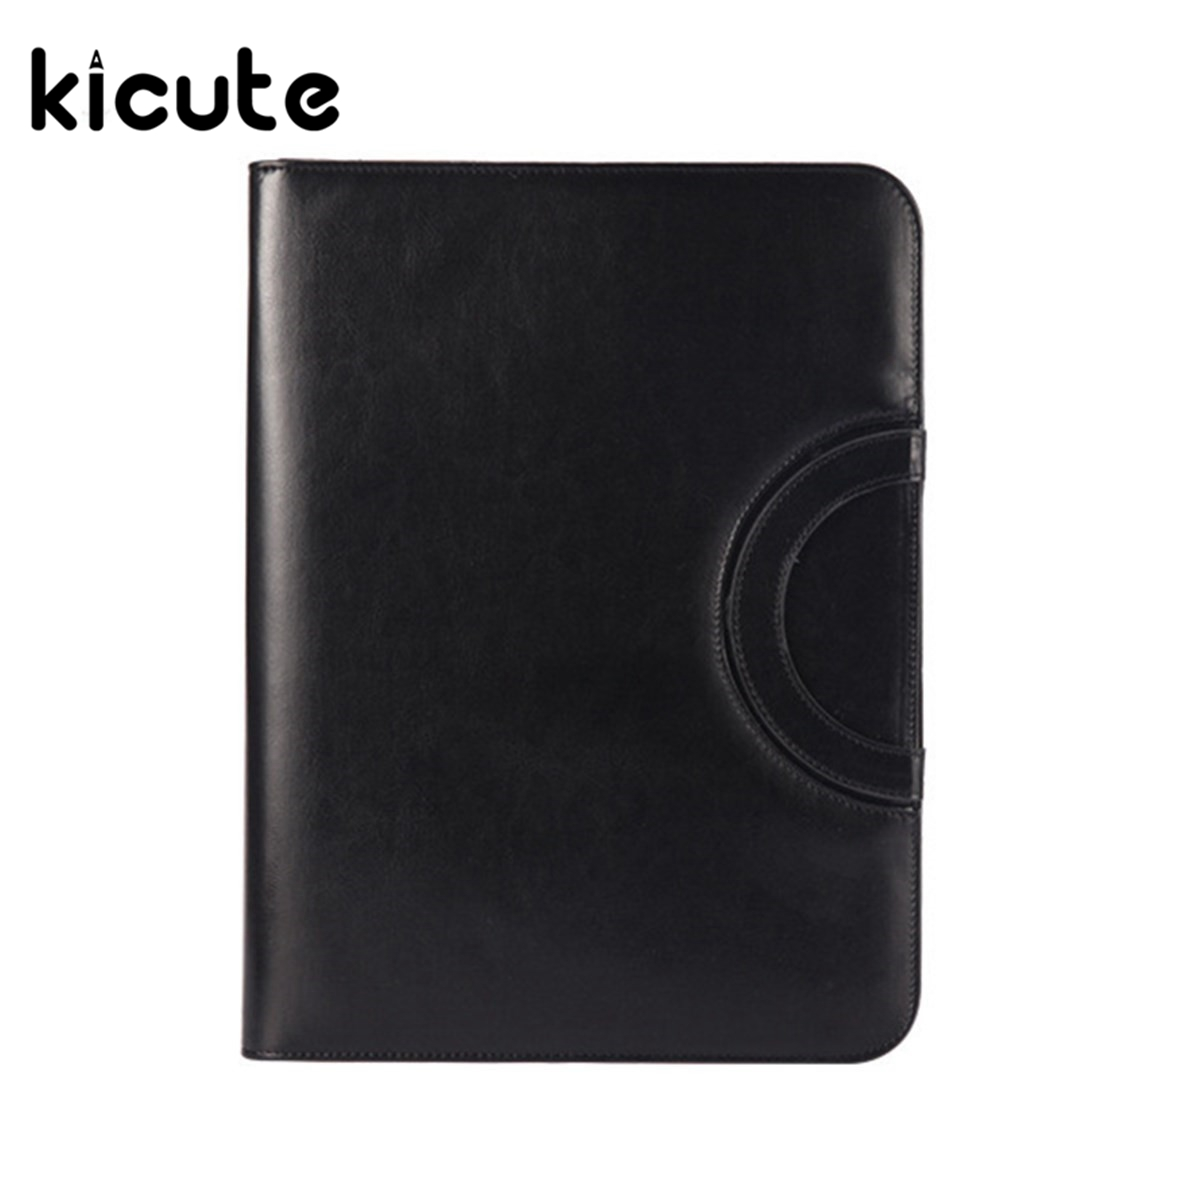 Kicute 1pc A4 PU Leather Zipped Ring Binder Conference Folder Document Bag Business Briefcase Office School Supplies Gifts kicute executive conference folder pu portfolio zipped leather look folder document organiser document holder office supplies